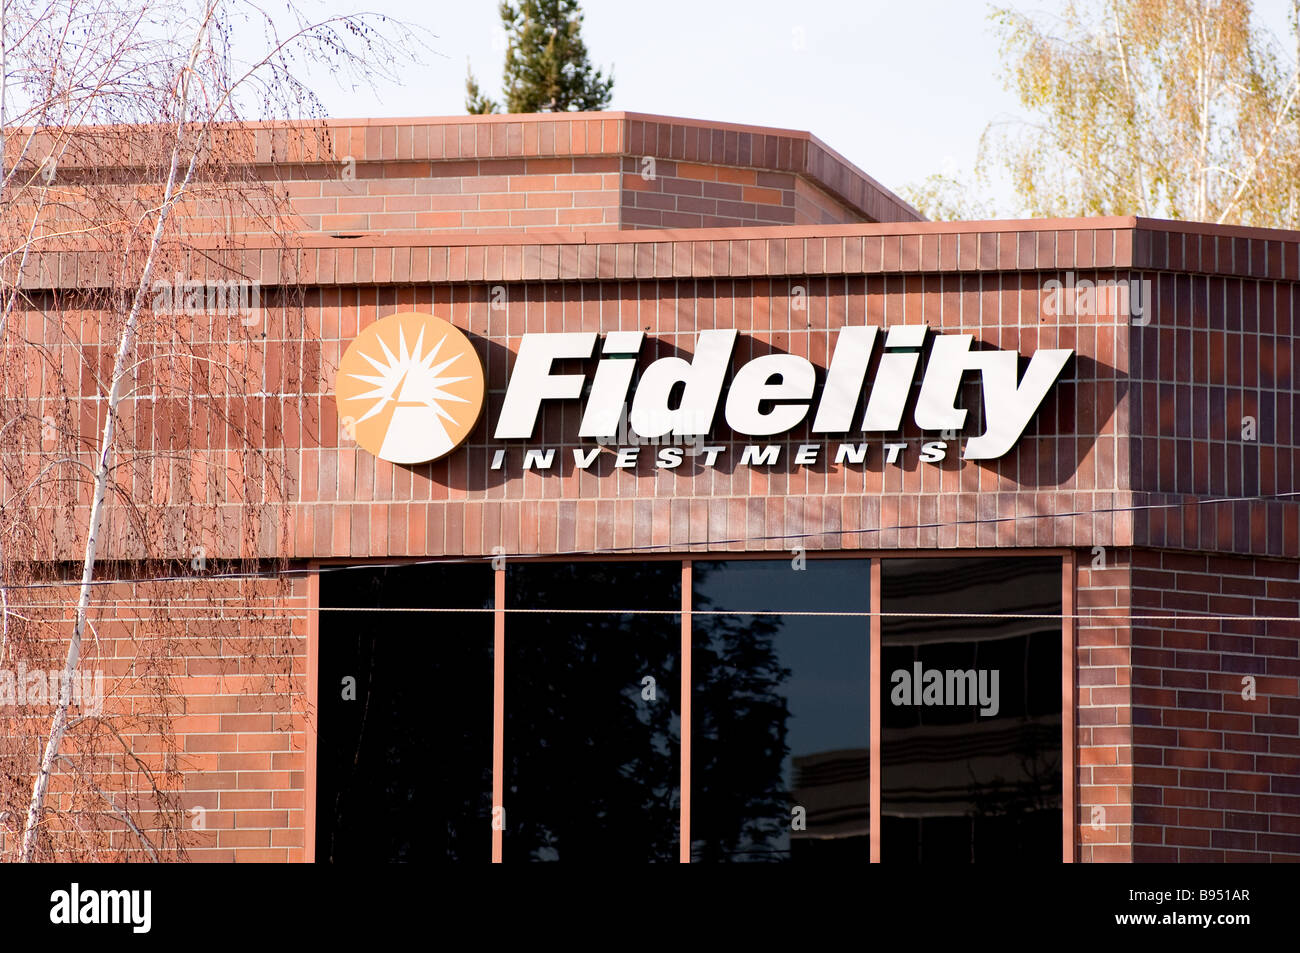 Exterior sign on the outside of brick building showing Fidelity Investments sign and logo - Stock Image